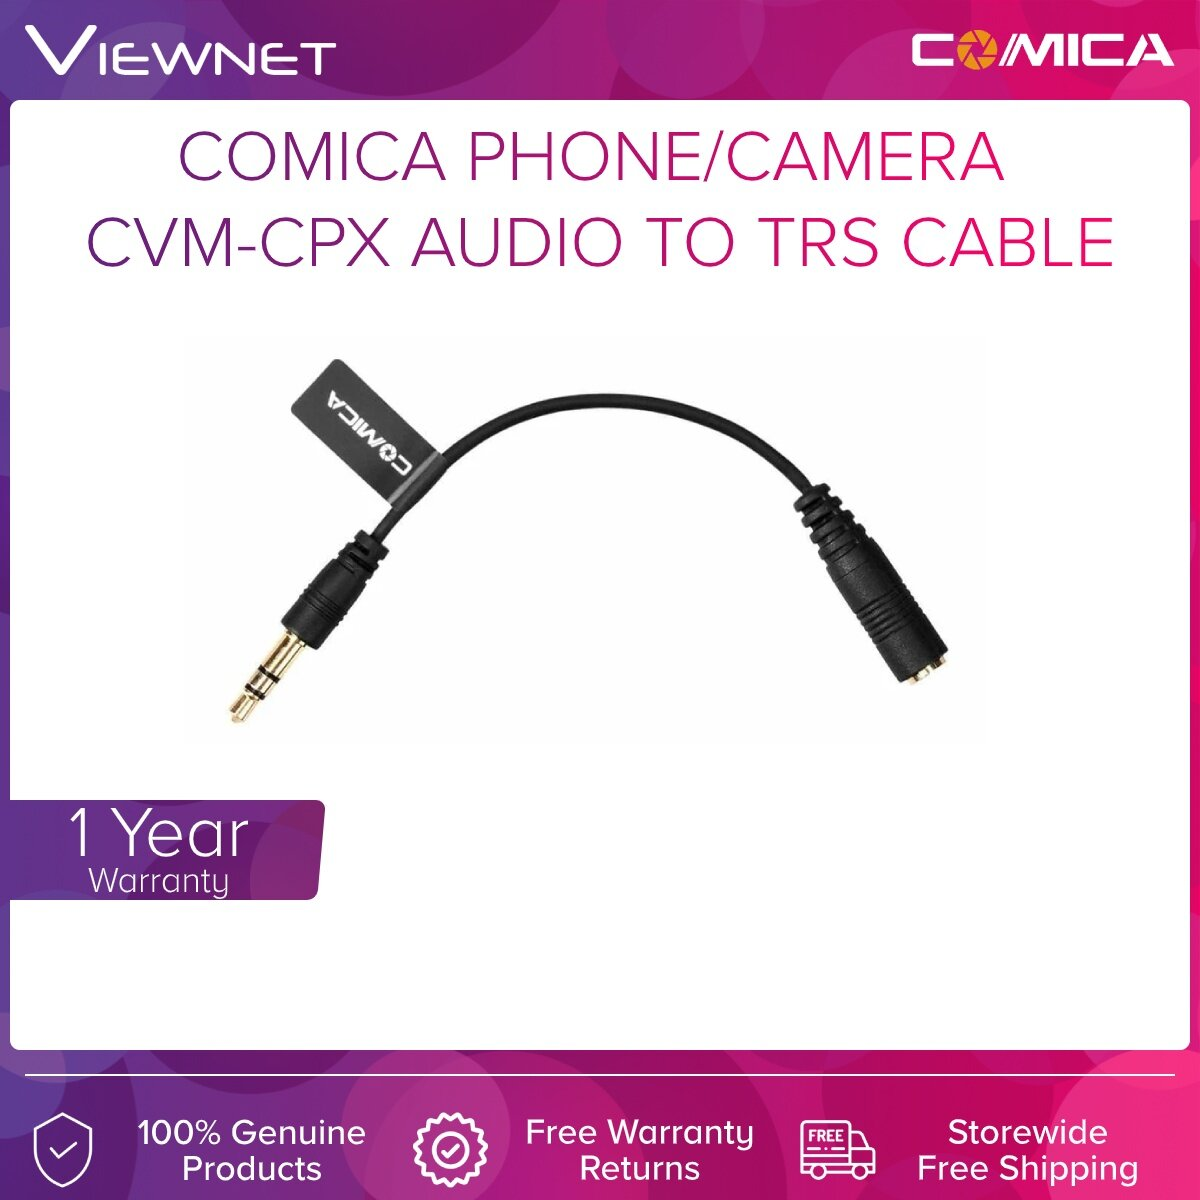 COMICA PHONE/CAMERA MIC ACCESSORIES CVM-CPX AUDIO TO TRS CABLE #1YEAR WARRANTY